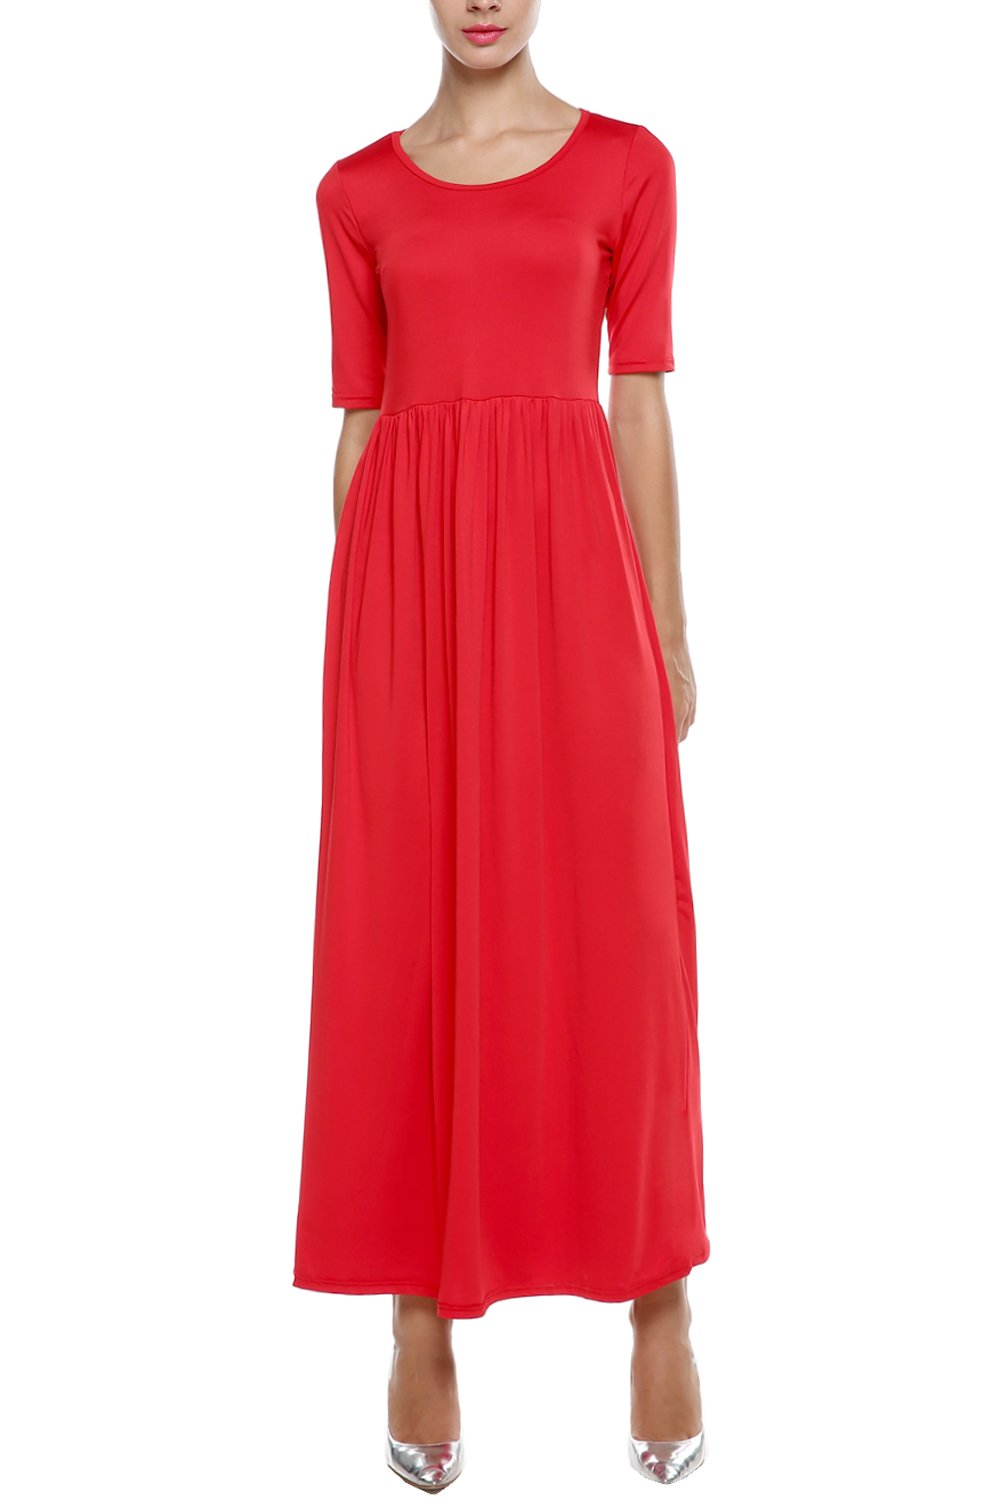 Meaneor Women Long and 3 4 Sleeve Solid Plus Size Maxi Long Evening Party Dress (S, Red 1)